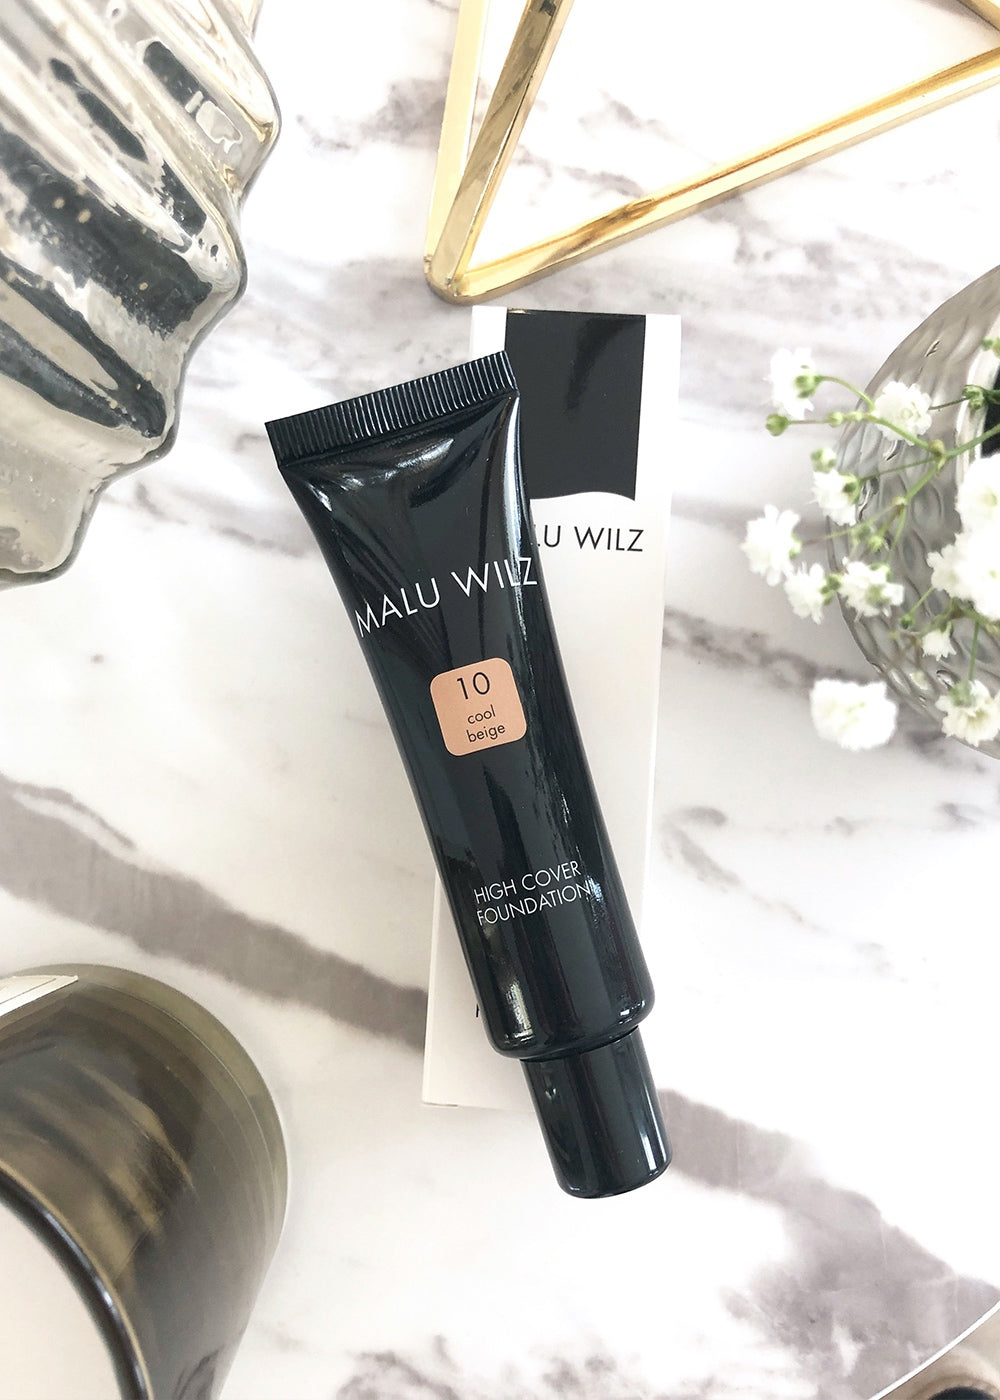 Malu Wilz High Cover Foundation Cool Beige No. 10